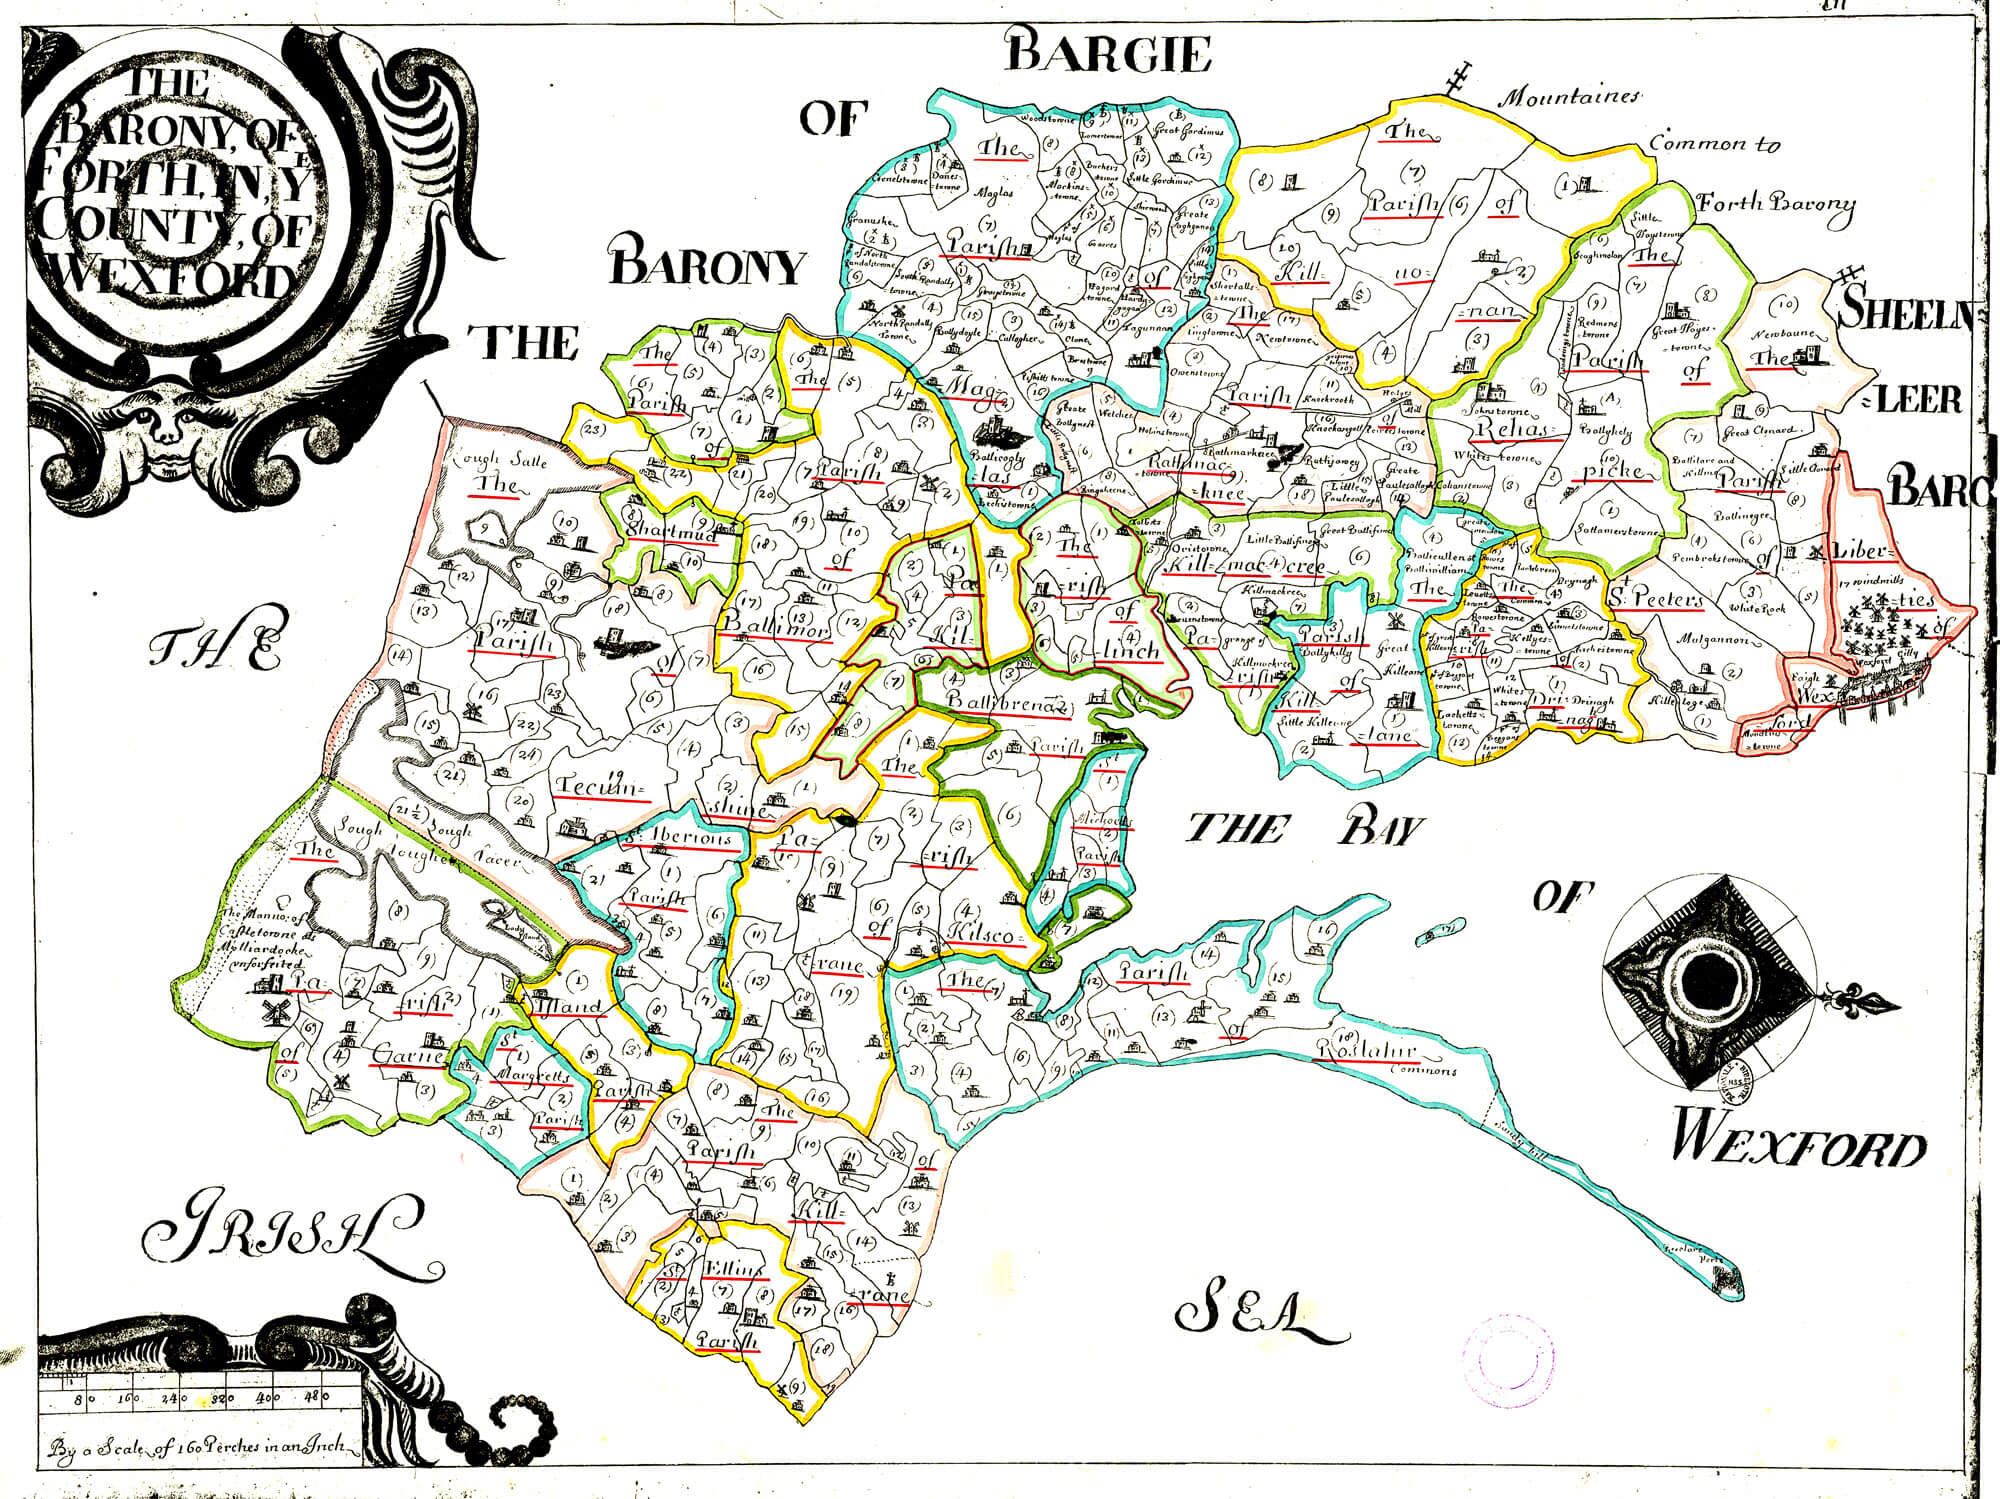 Map Of Wexford County Ireland.Ireland Barony Maps County Wexford L Brown Collection